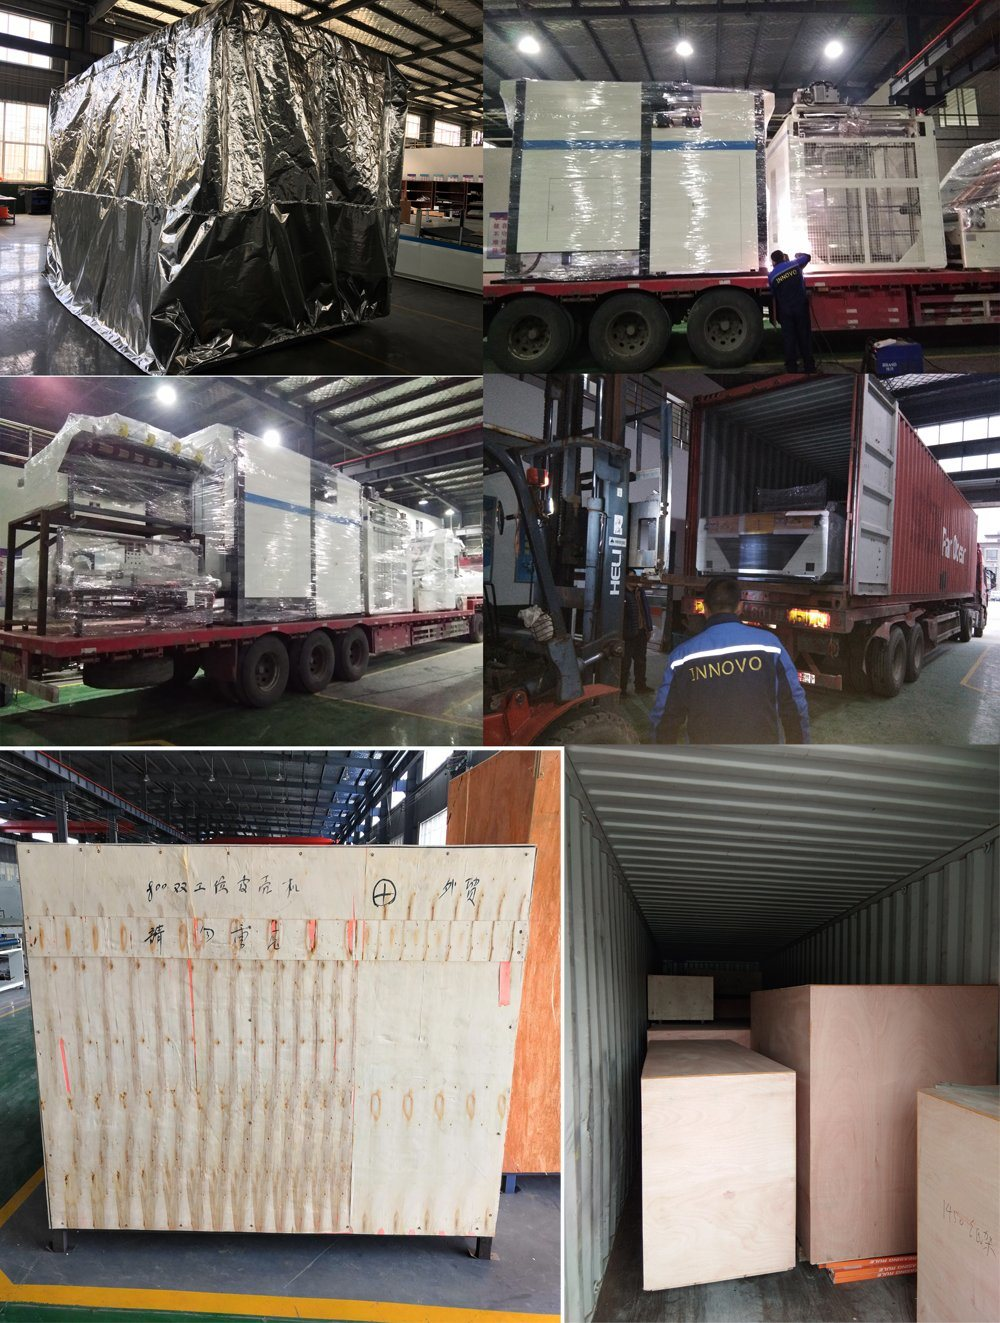 Anhui-Innovo-Bochen-Machinery-Manufacturing-Co-Ltd- (2)